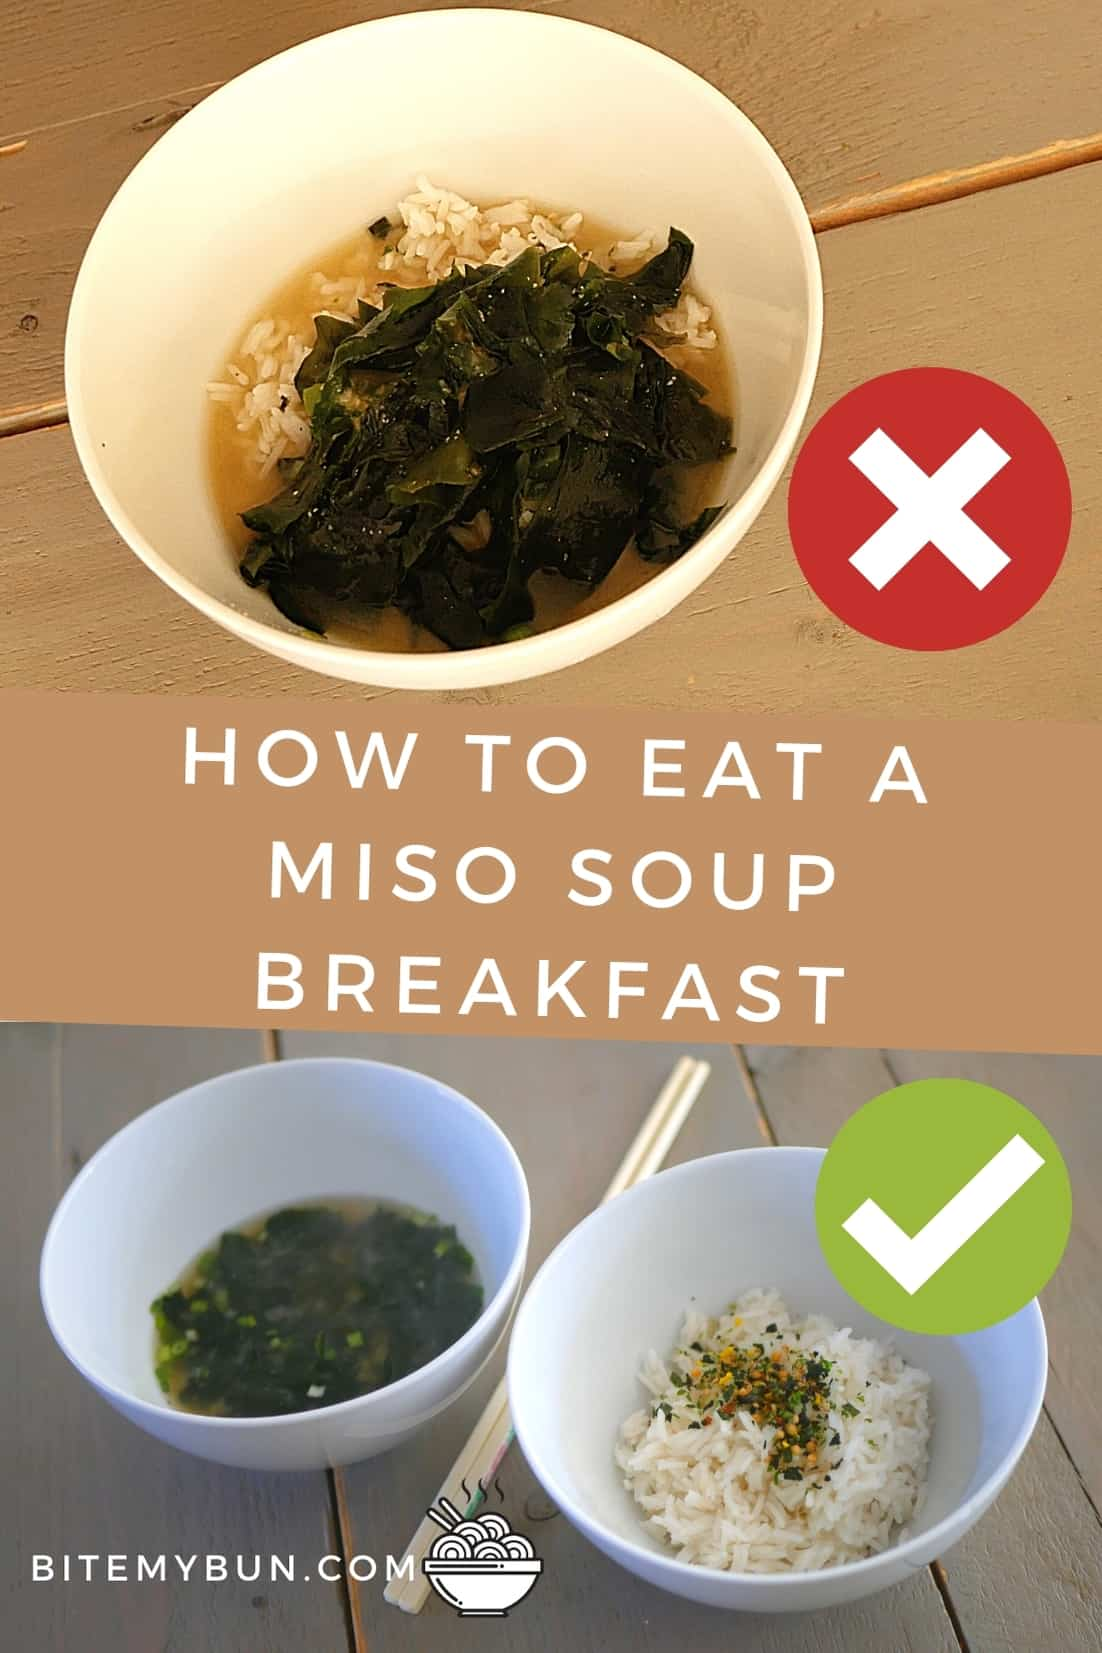 How to eat a miso soup breakfast